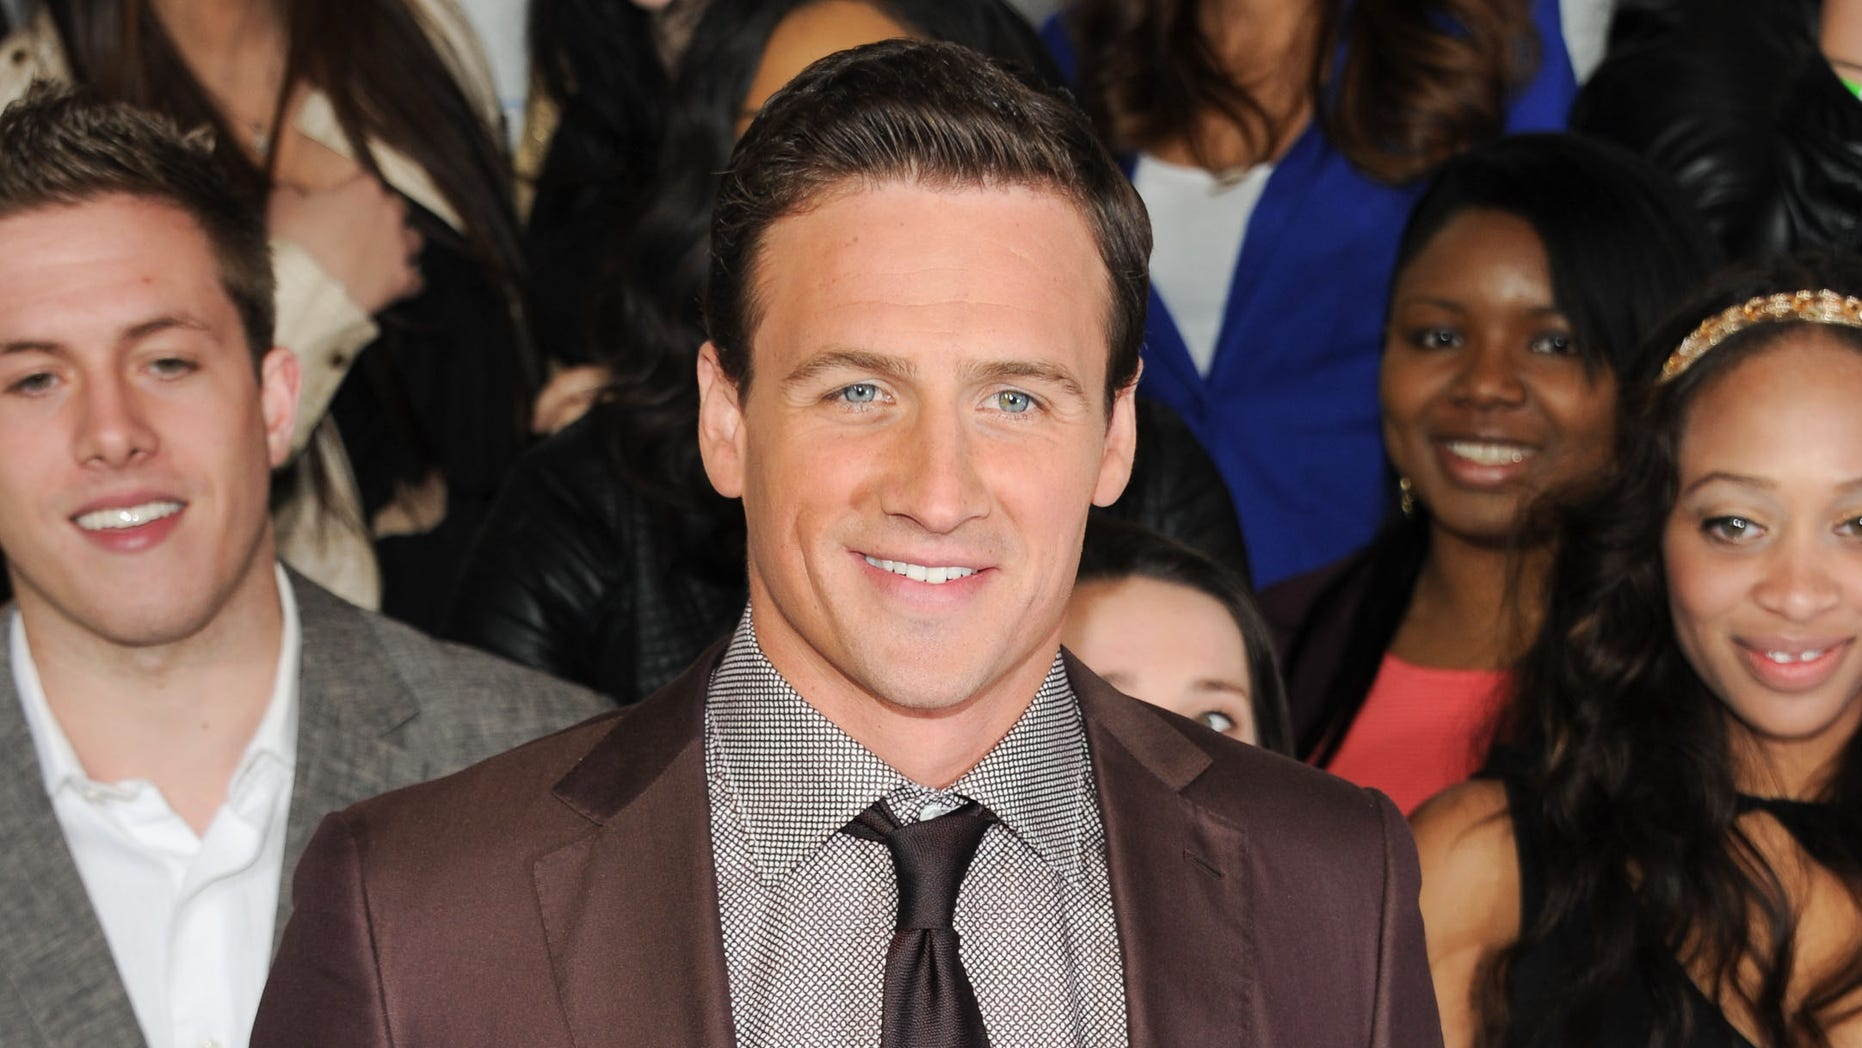 Olympic swimmer Ryan Lochte spent a reported $12K while celebrating his bachelor party in Vegas.